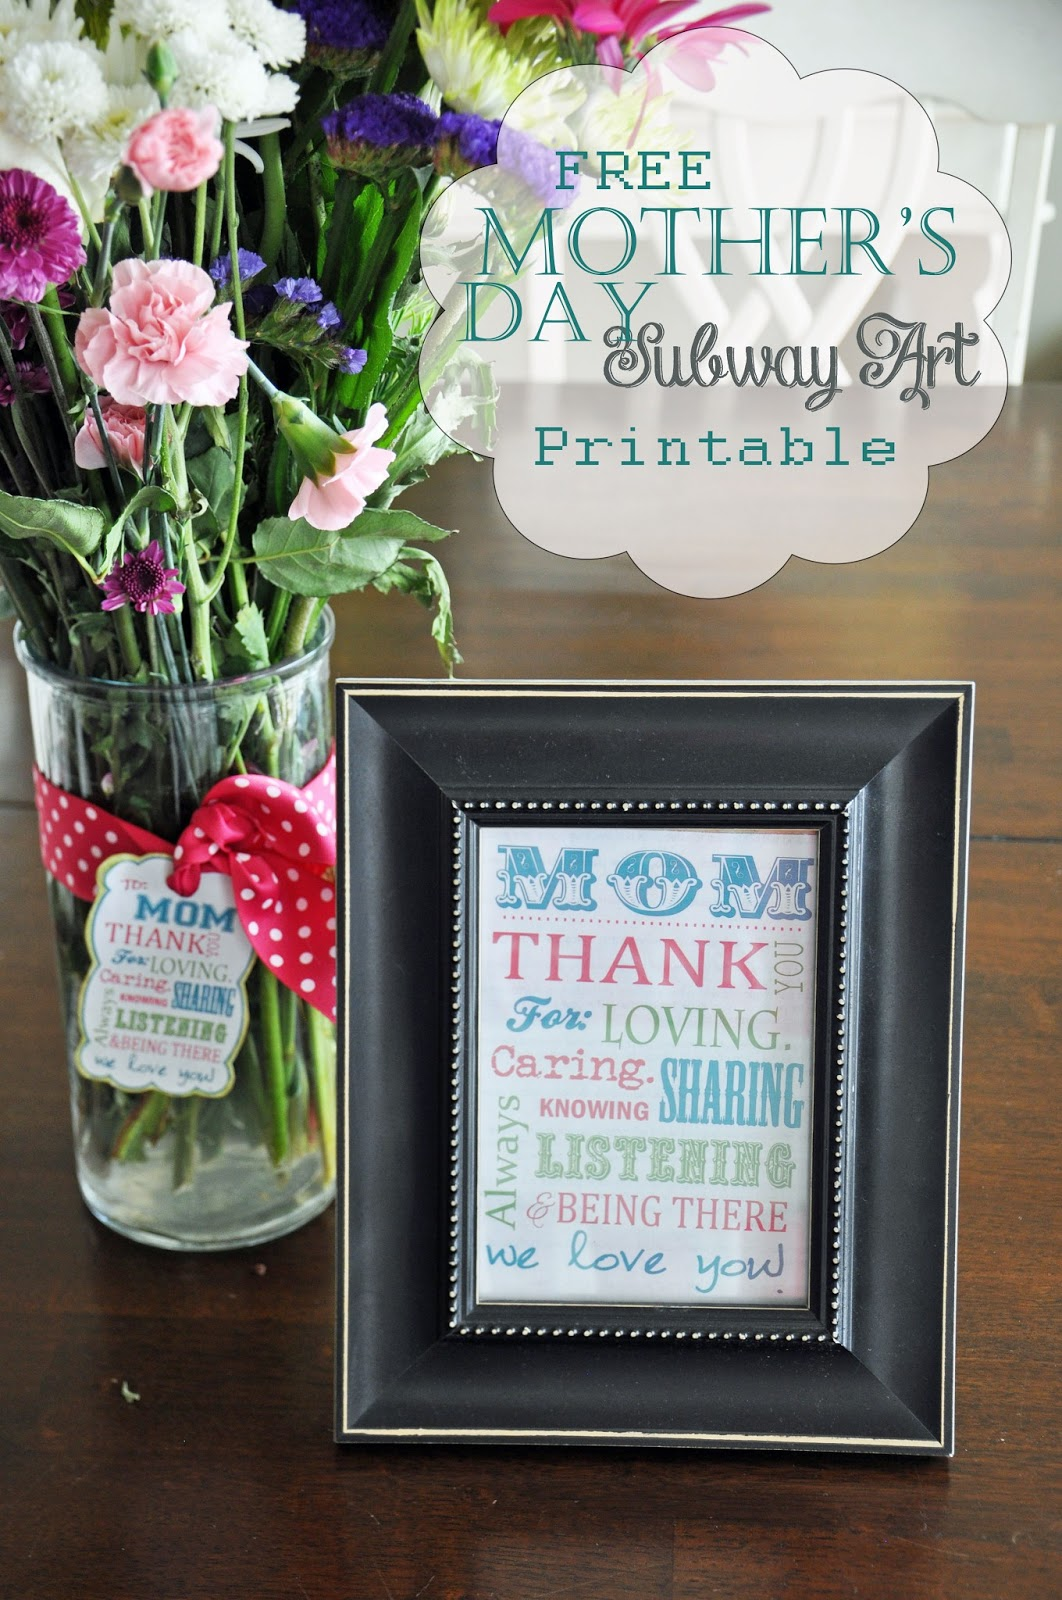 poppy seed projects  10 fast  affordable and free mother u2019s day gifts using printables